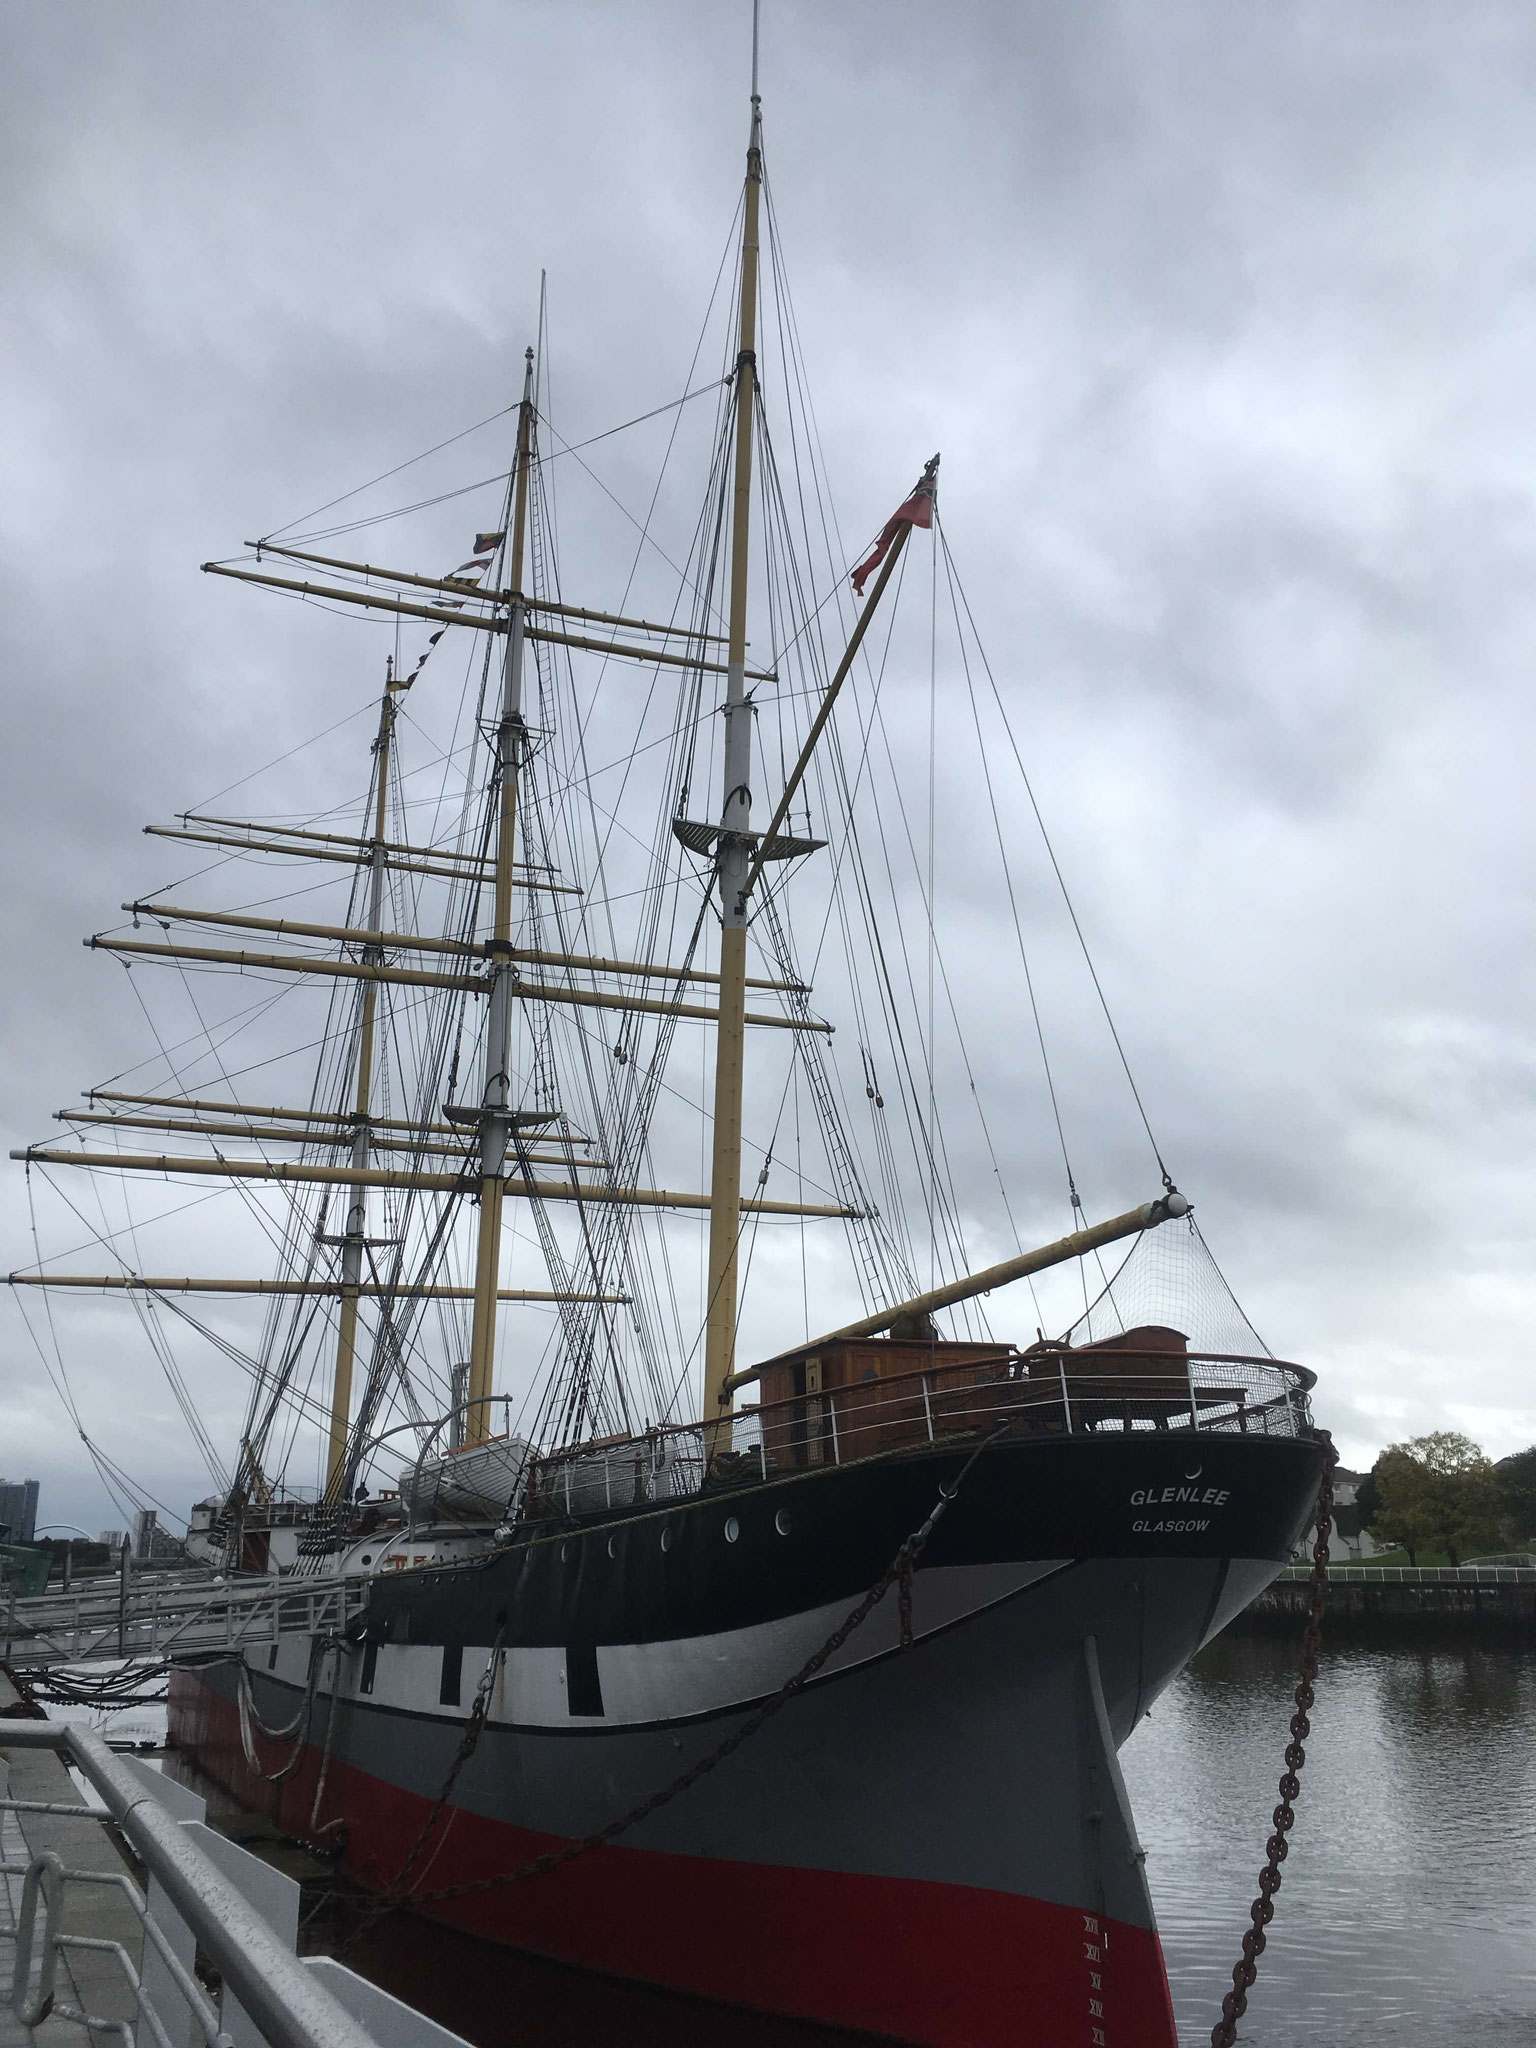 Der Segler Glenlee am Clyde in Glasgow